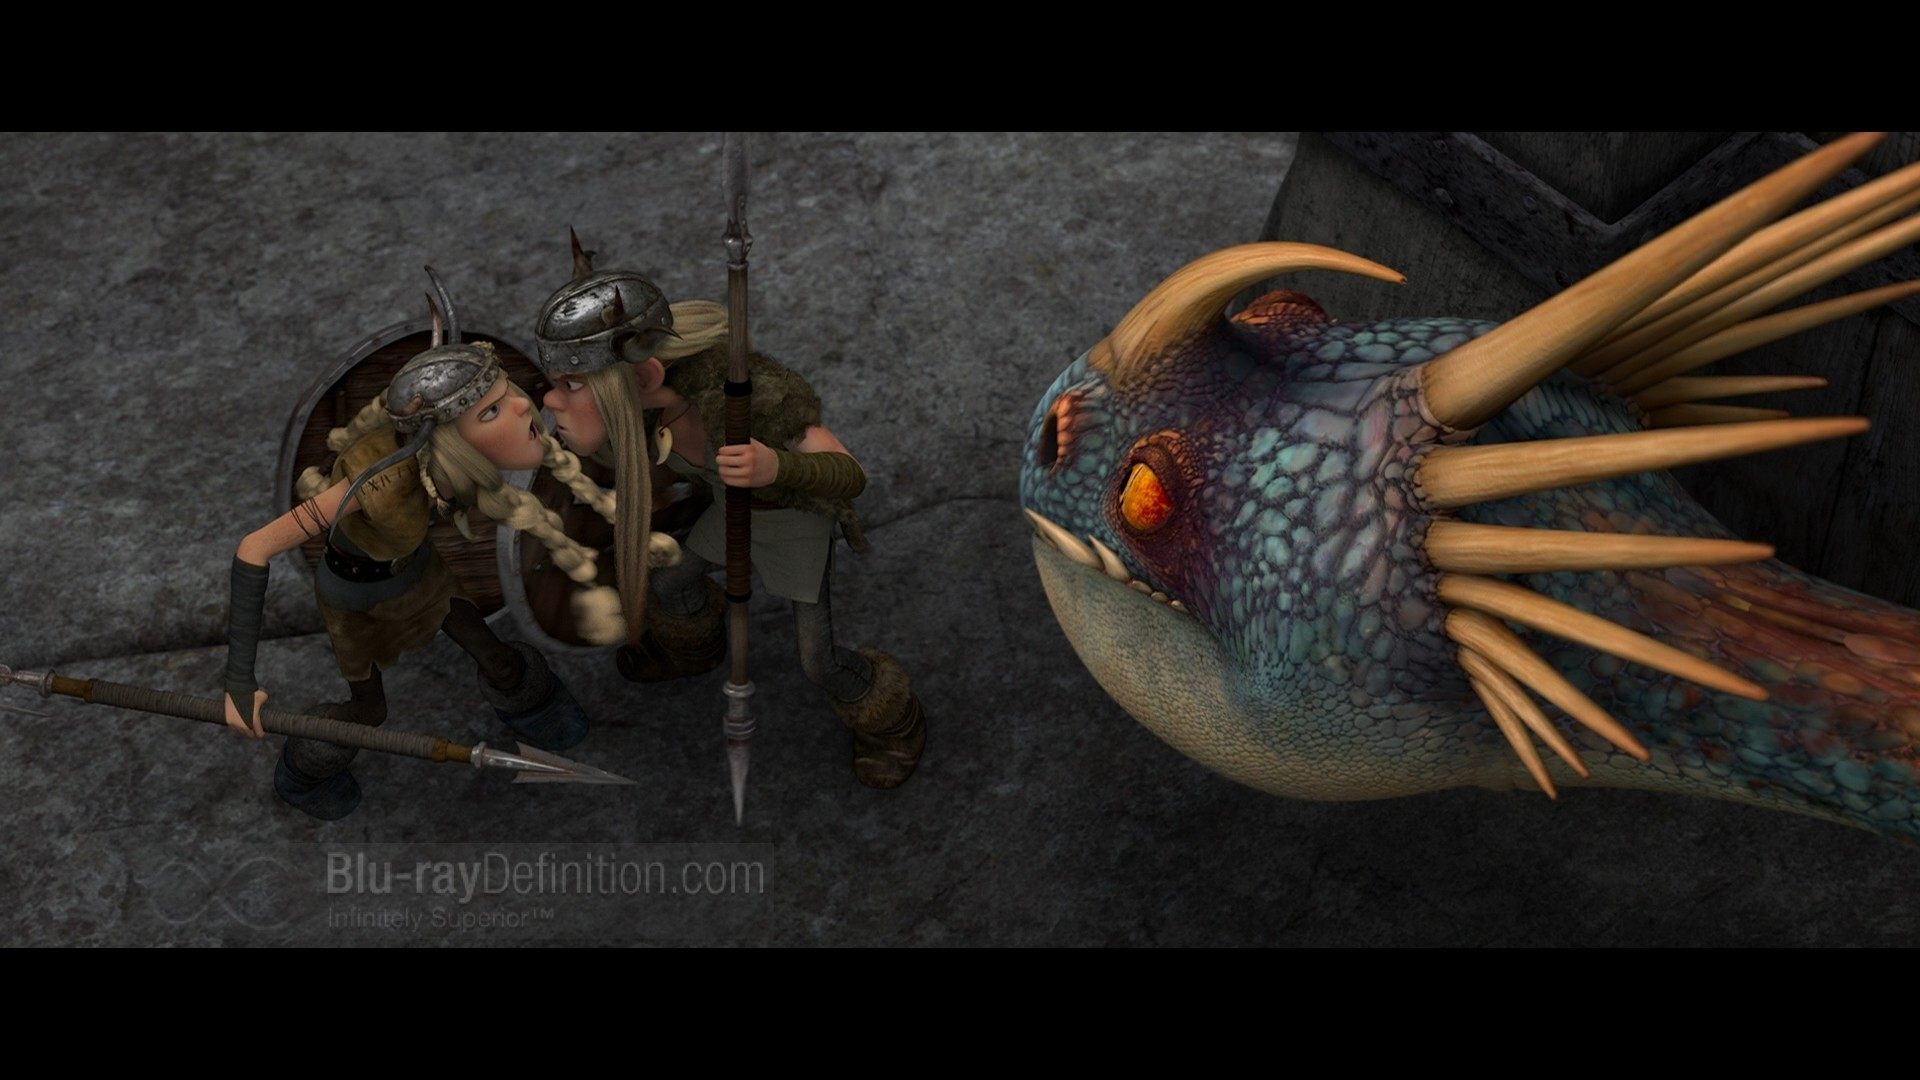 How to Train Your Dragon Blu Ray & 3D Wallpapers Part Two